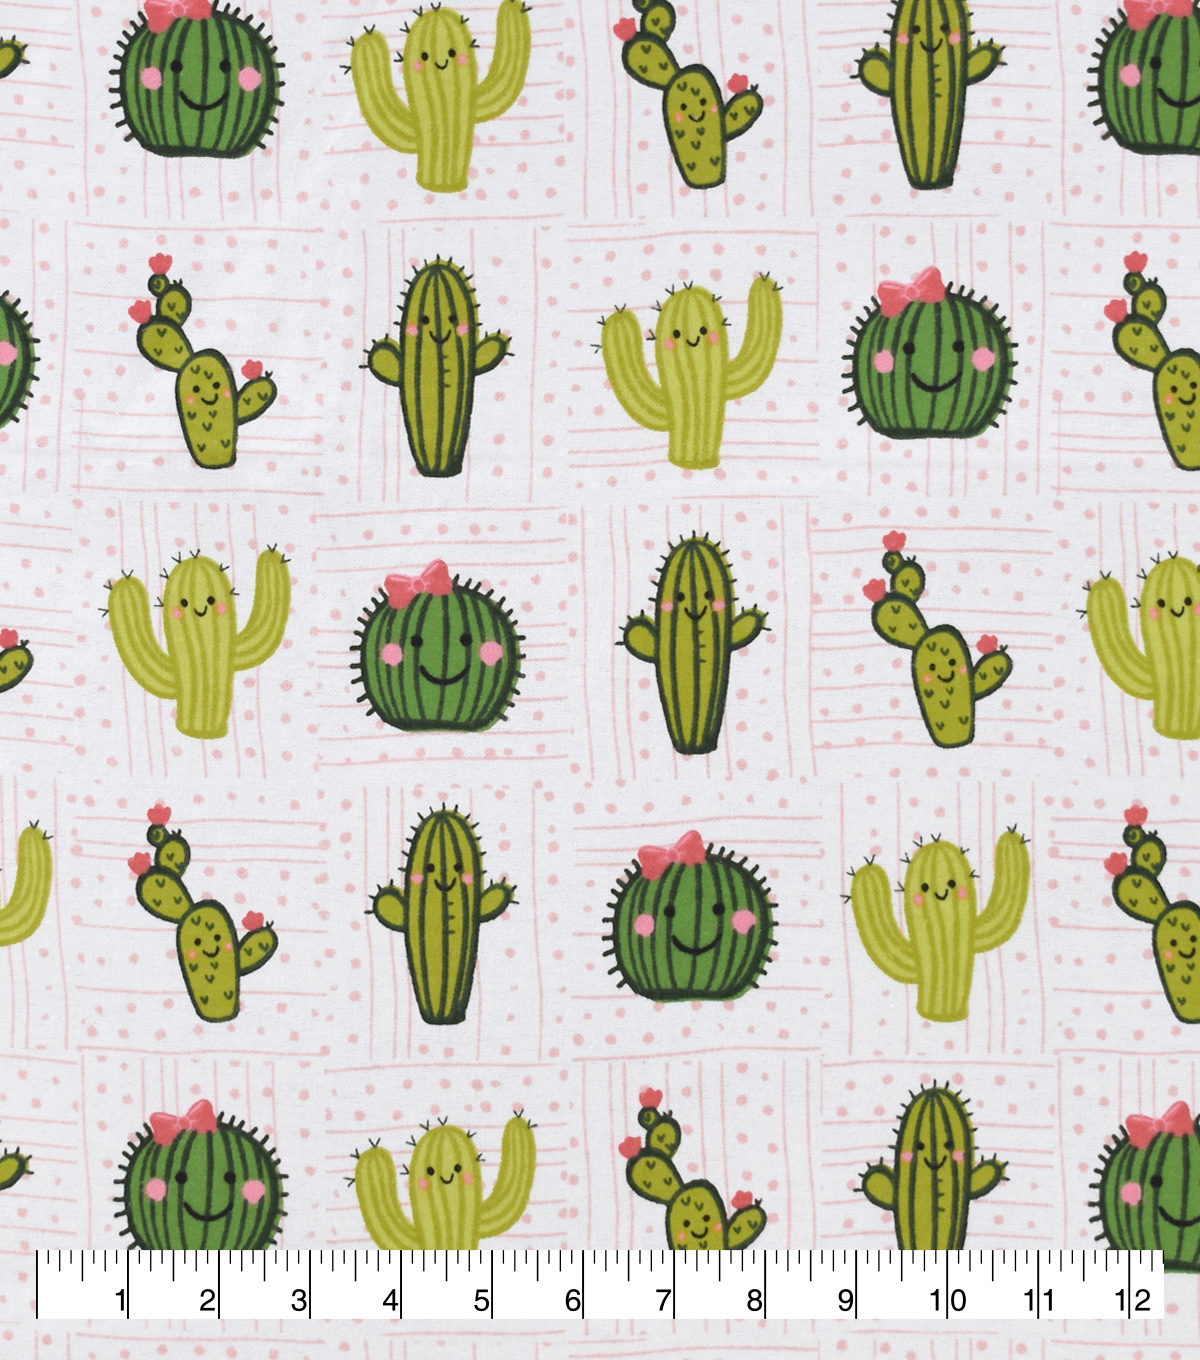 Snuggle Flannel Fabric-Cactus Smiling Friends